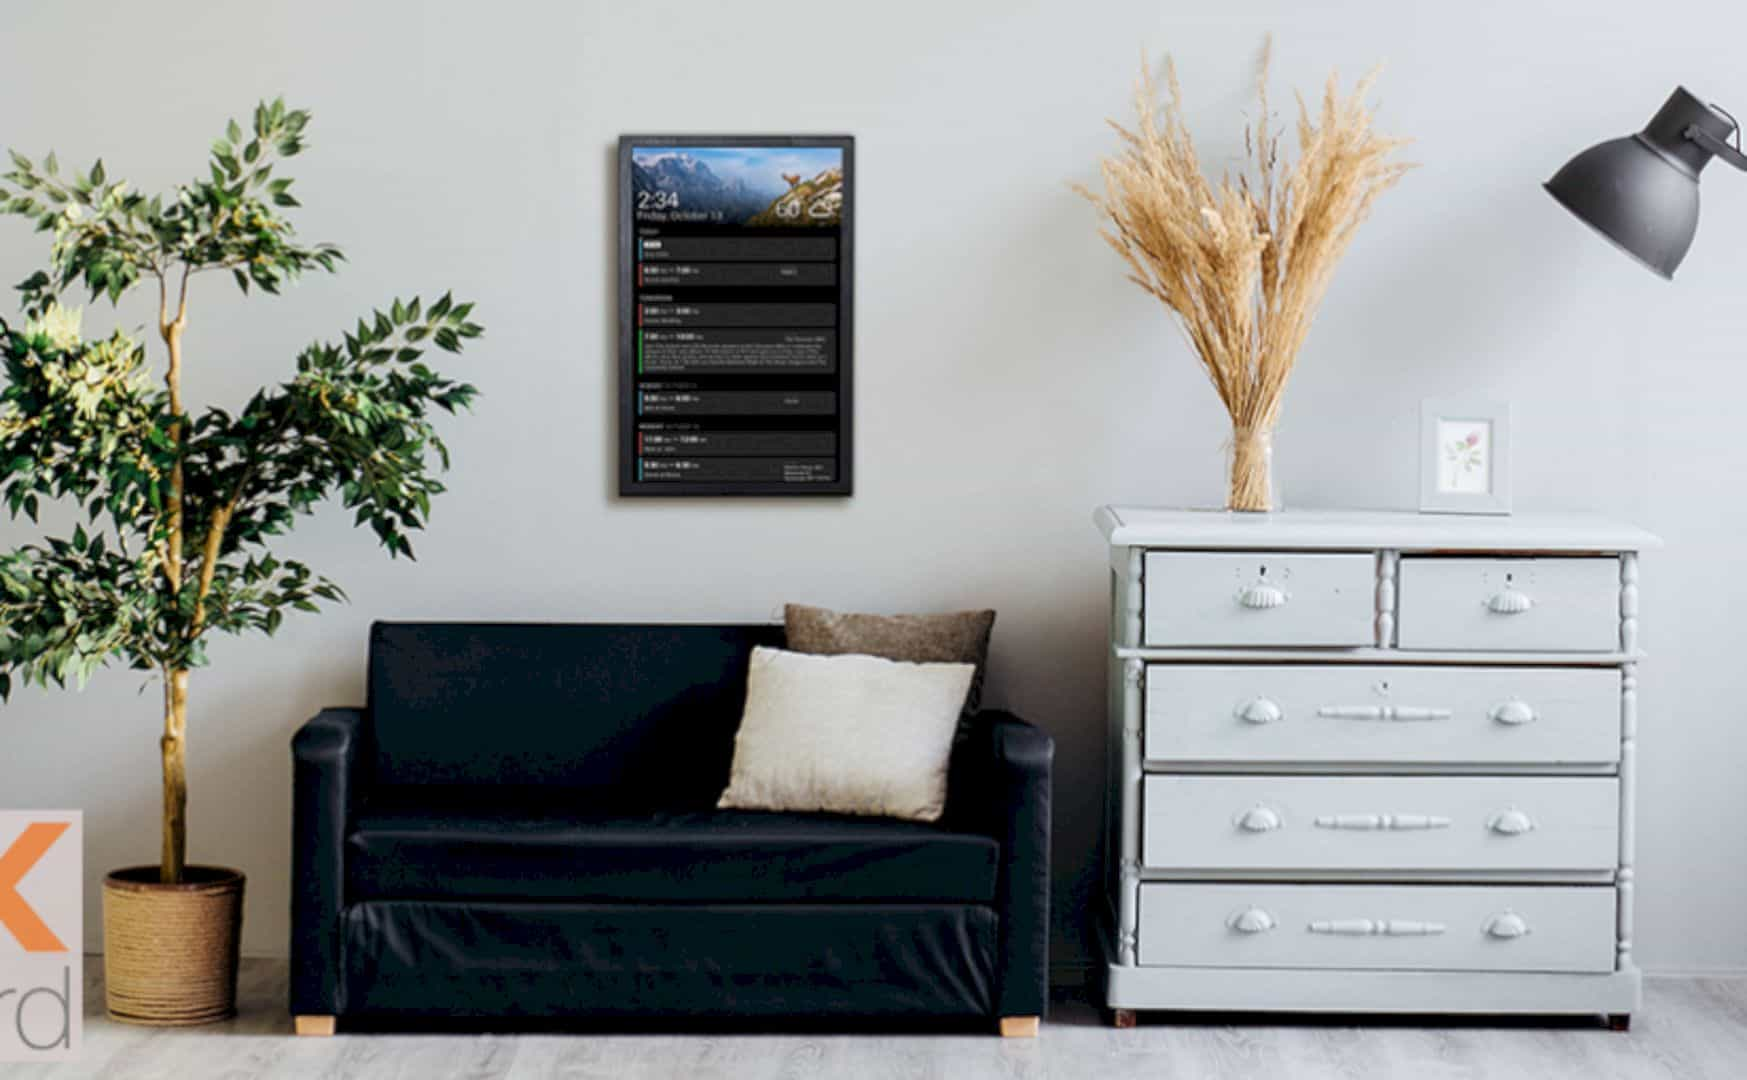 DAKBoard: The Revolutionary Wall-Mounted Display